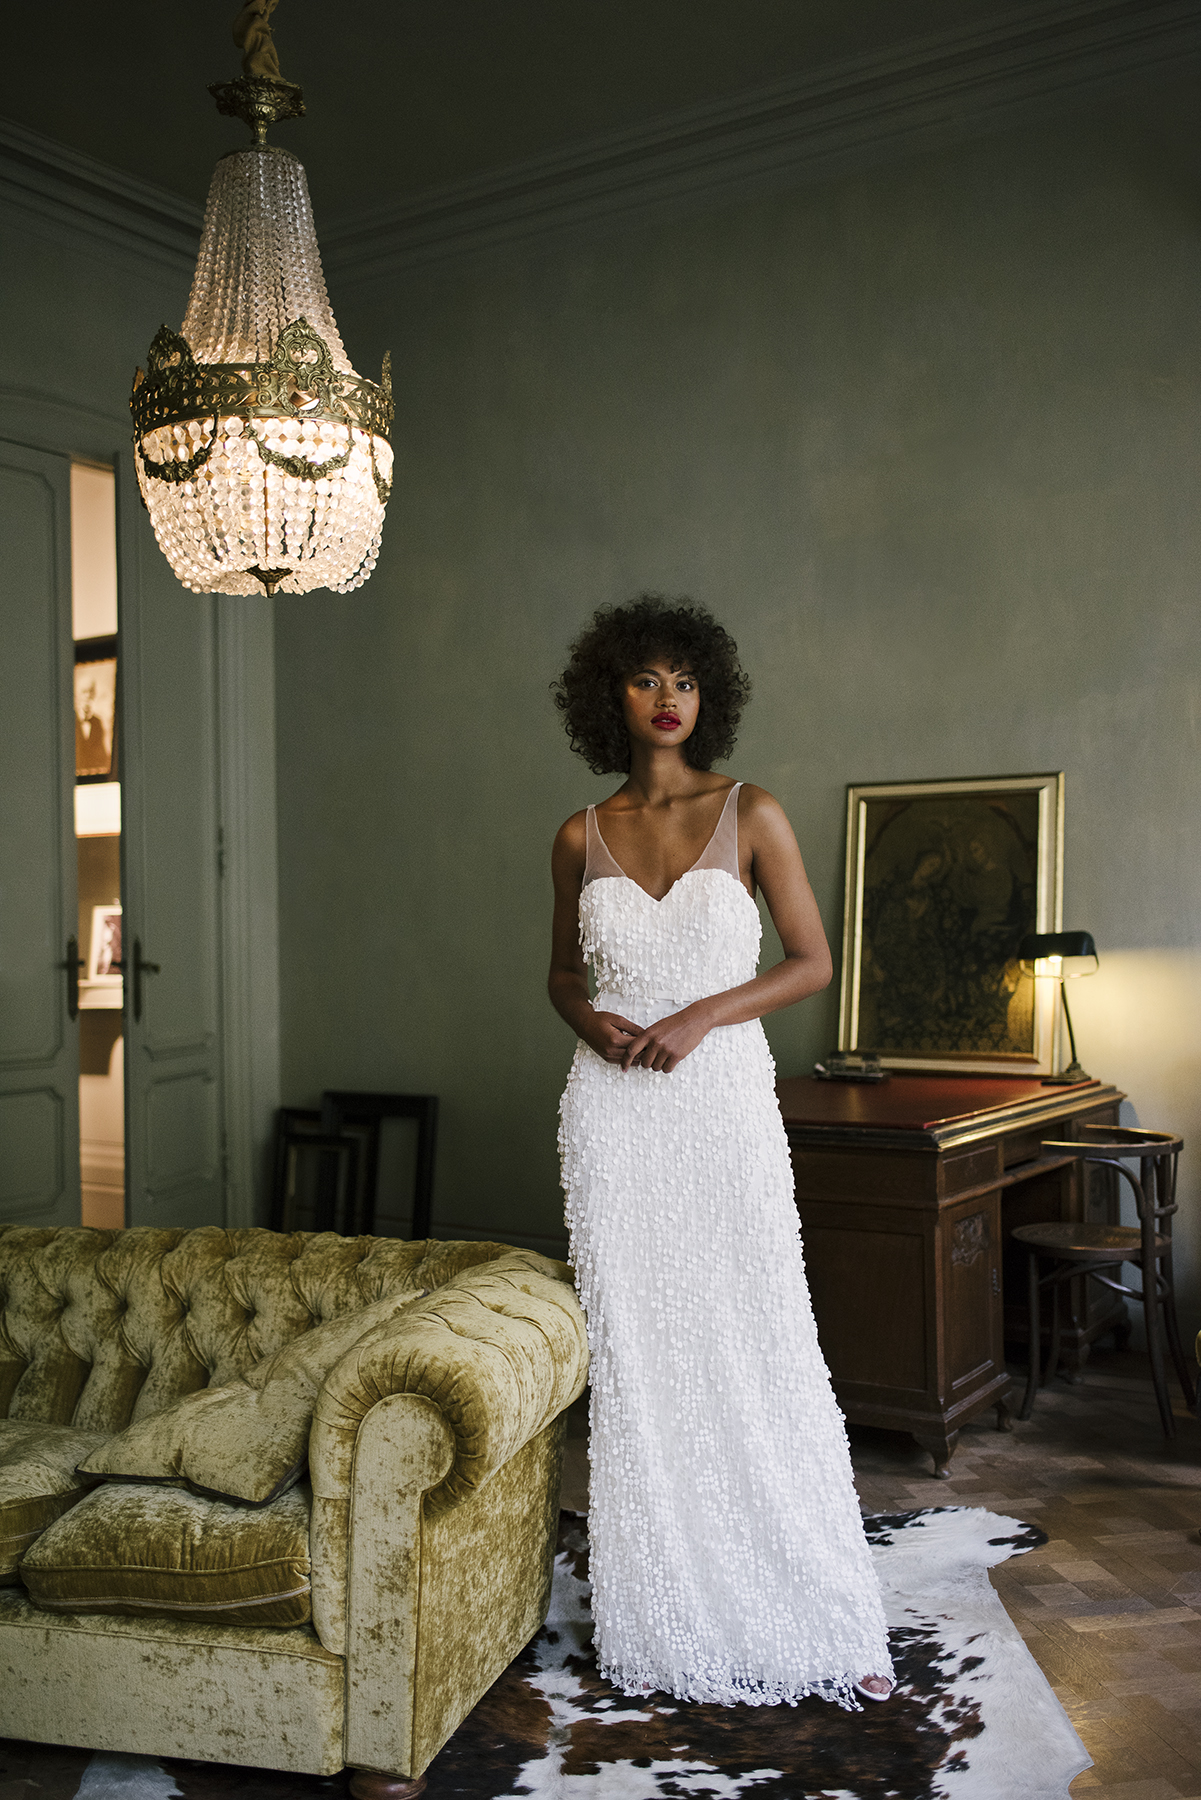 valentine-avoh-robe-mariee-rita-wedding-dress-bruxelles-photo-elodie-timmermans-9.jpg